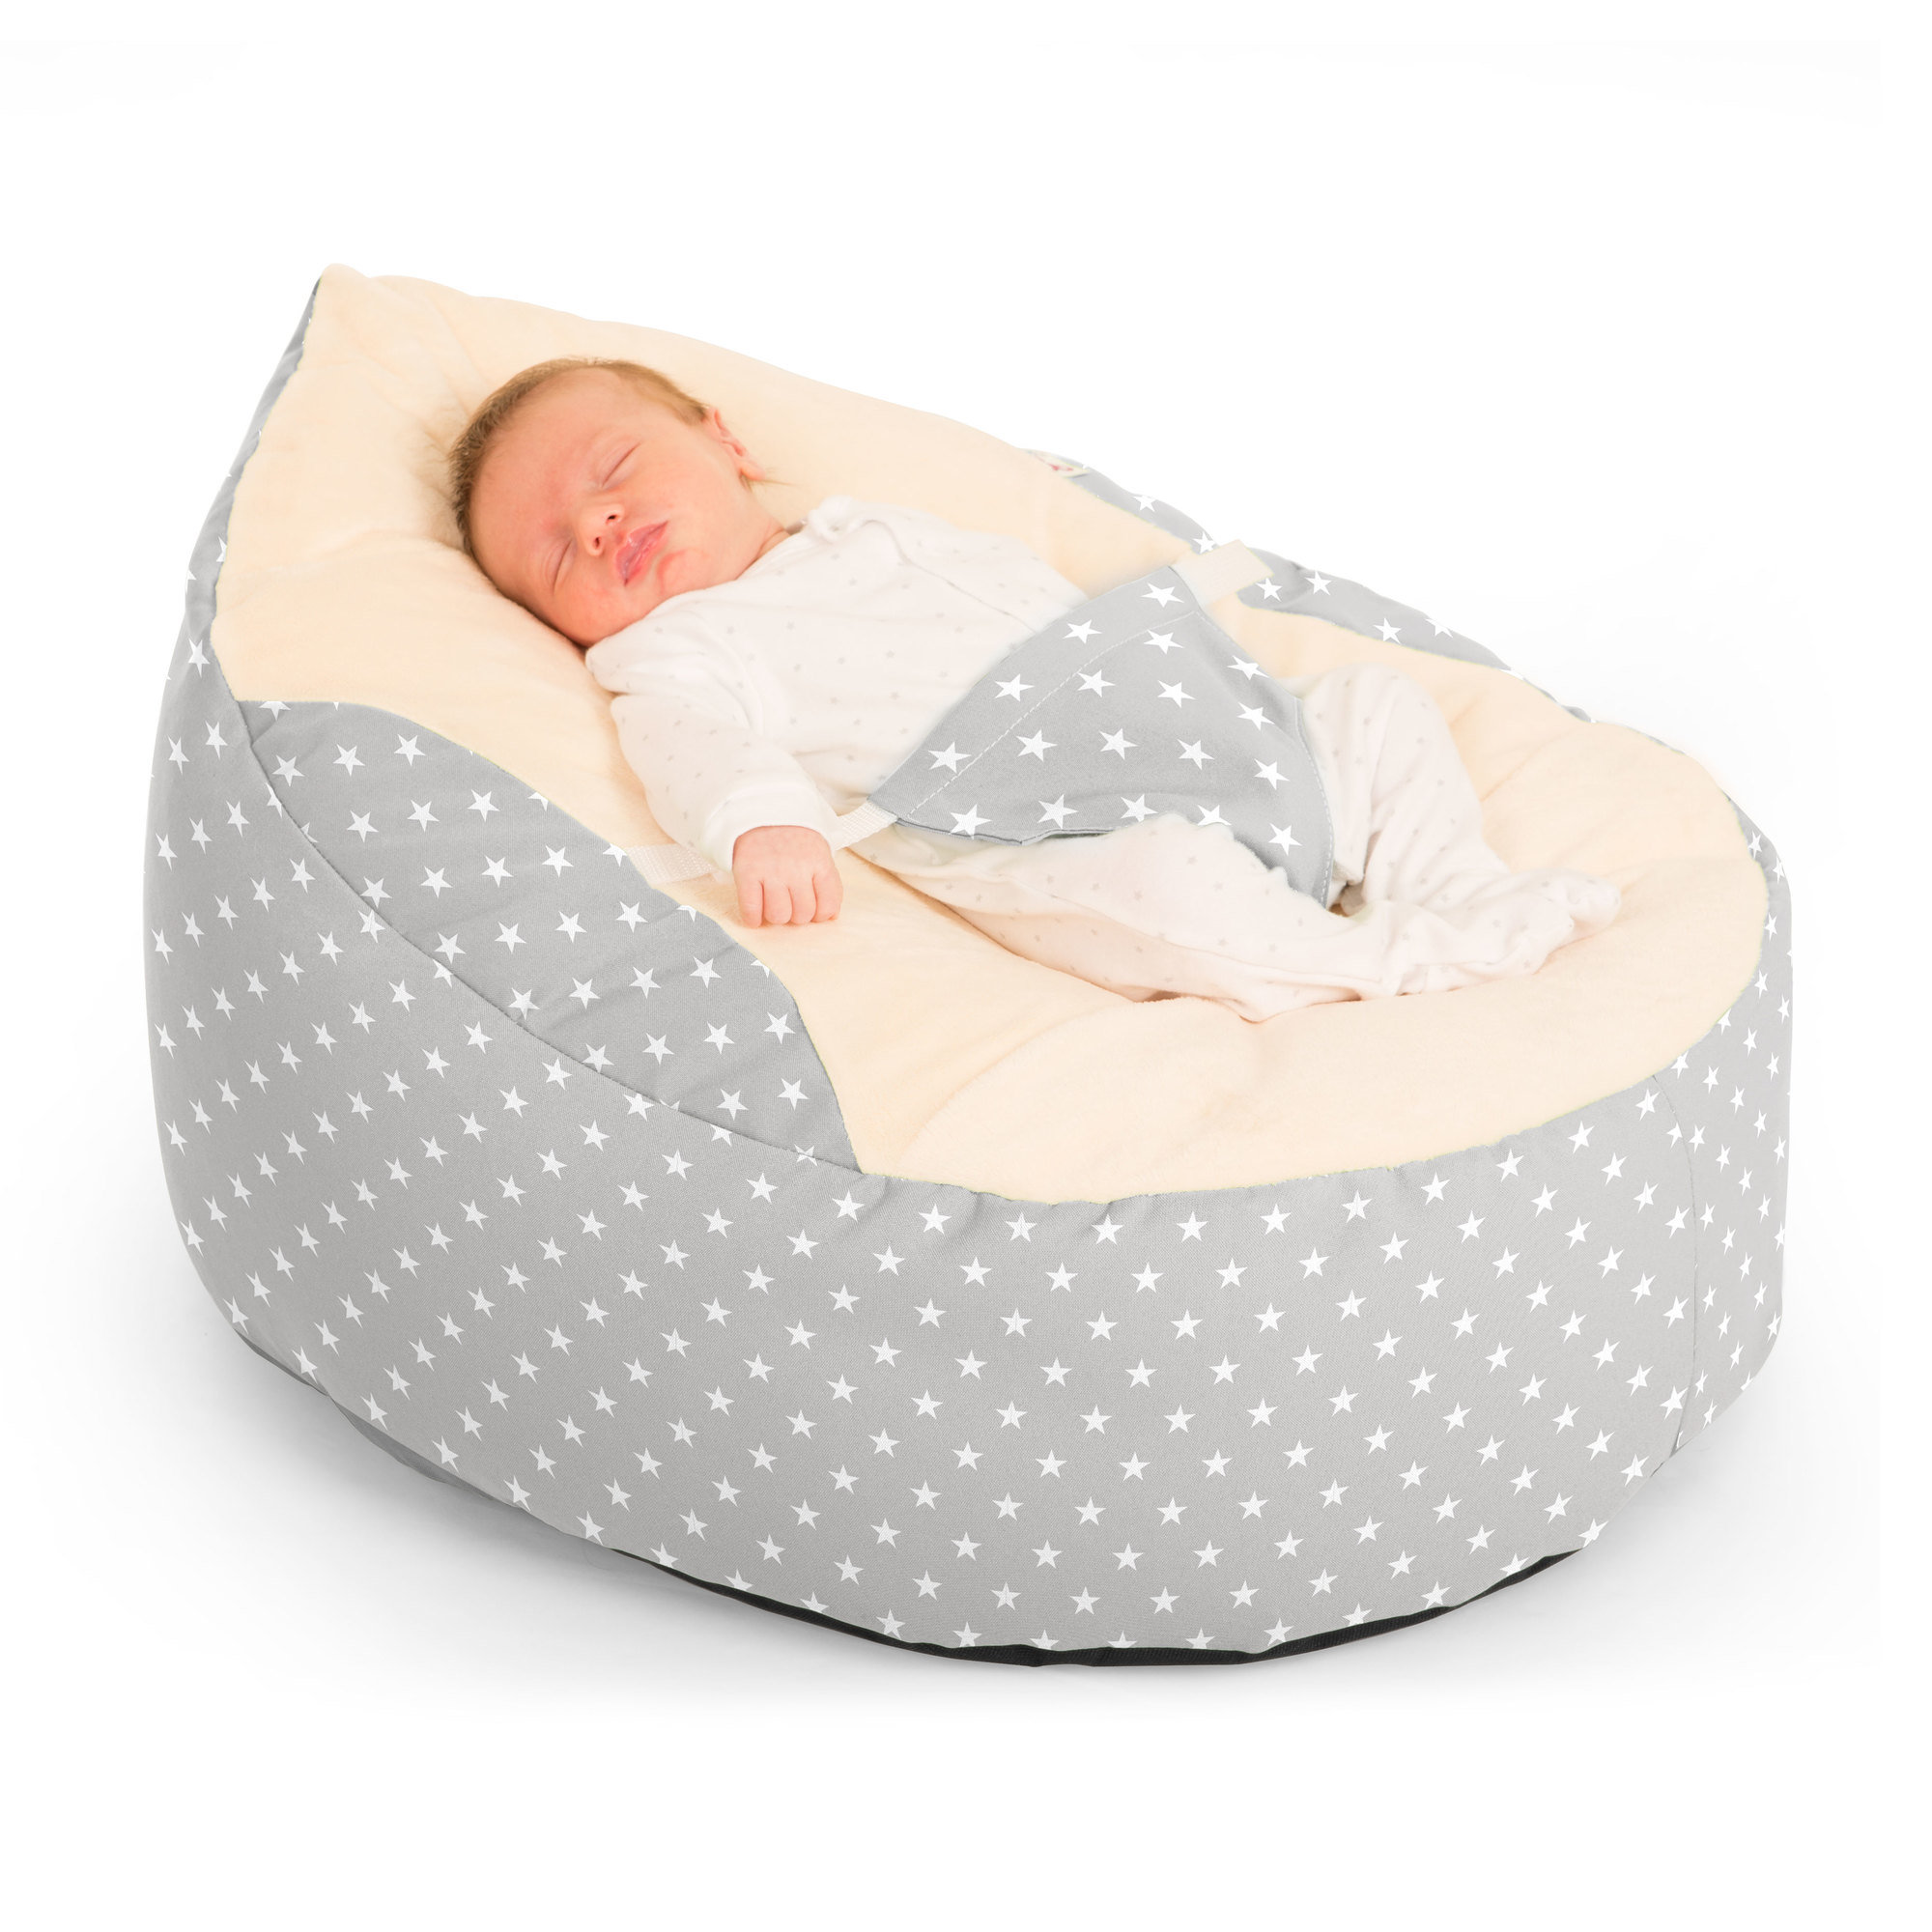 Superb About Us Hugsac Caraccident5 Cool Chair Designs And Ideas Caraccident5Info